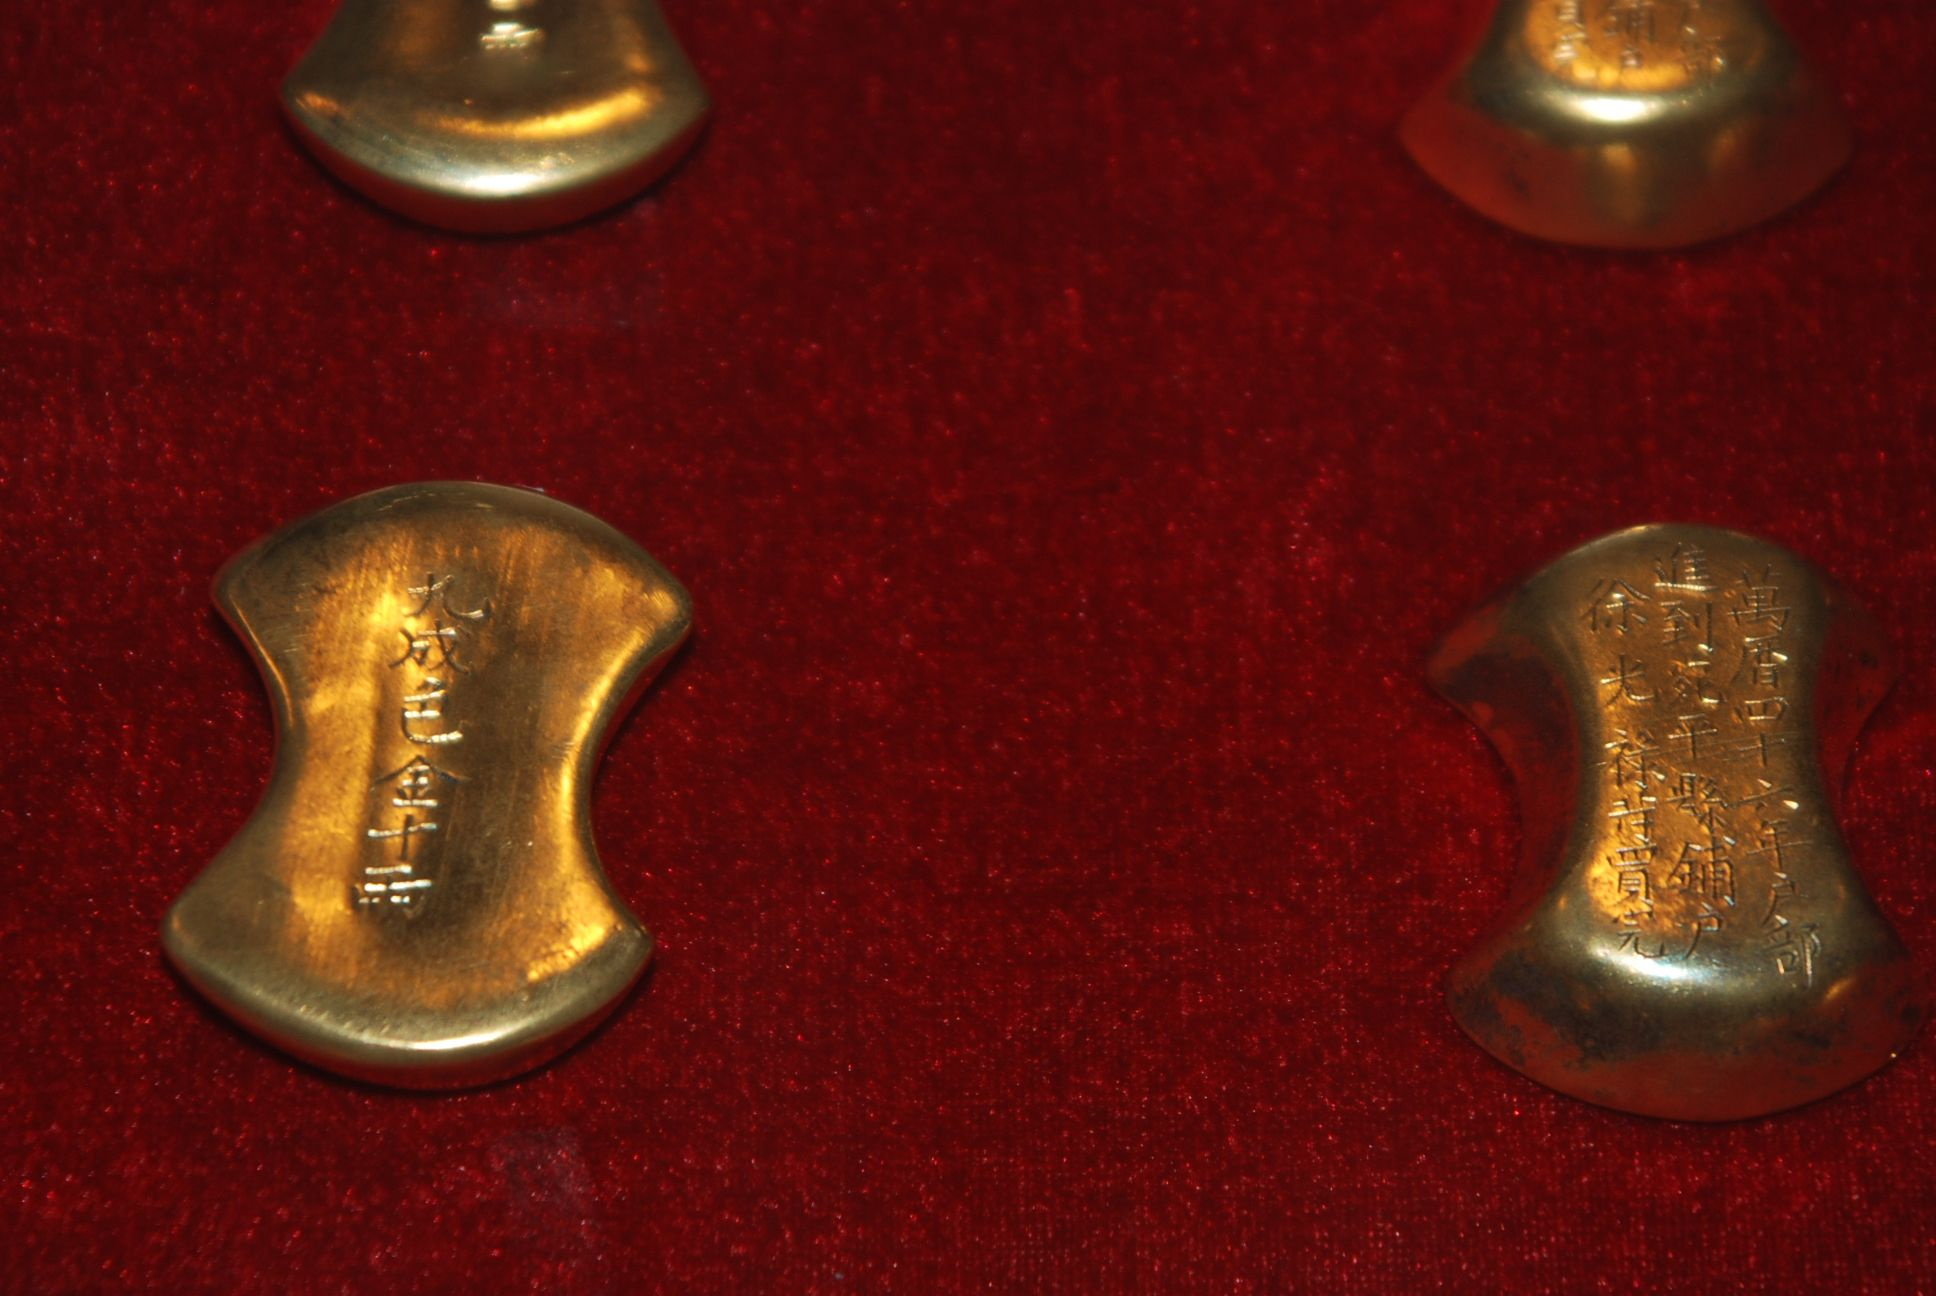 Zoom in of the front (left) and back sides (right) of two of the gold ingots in the collection.